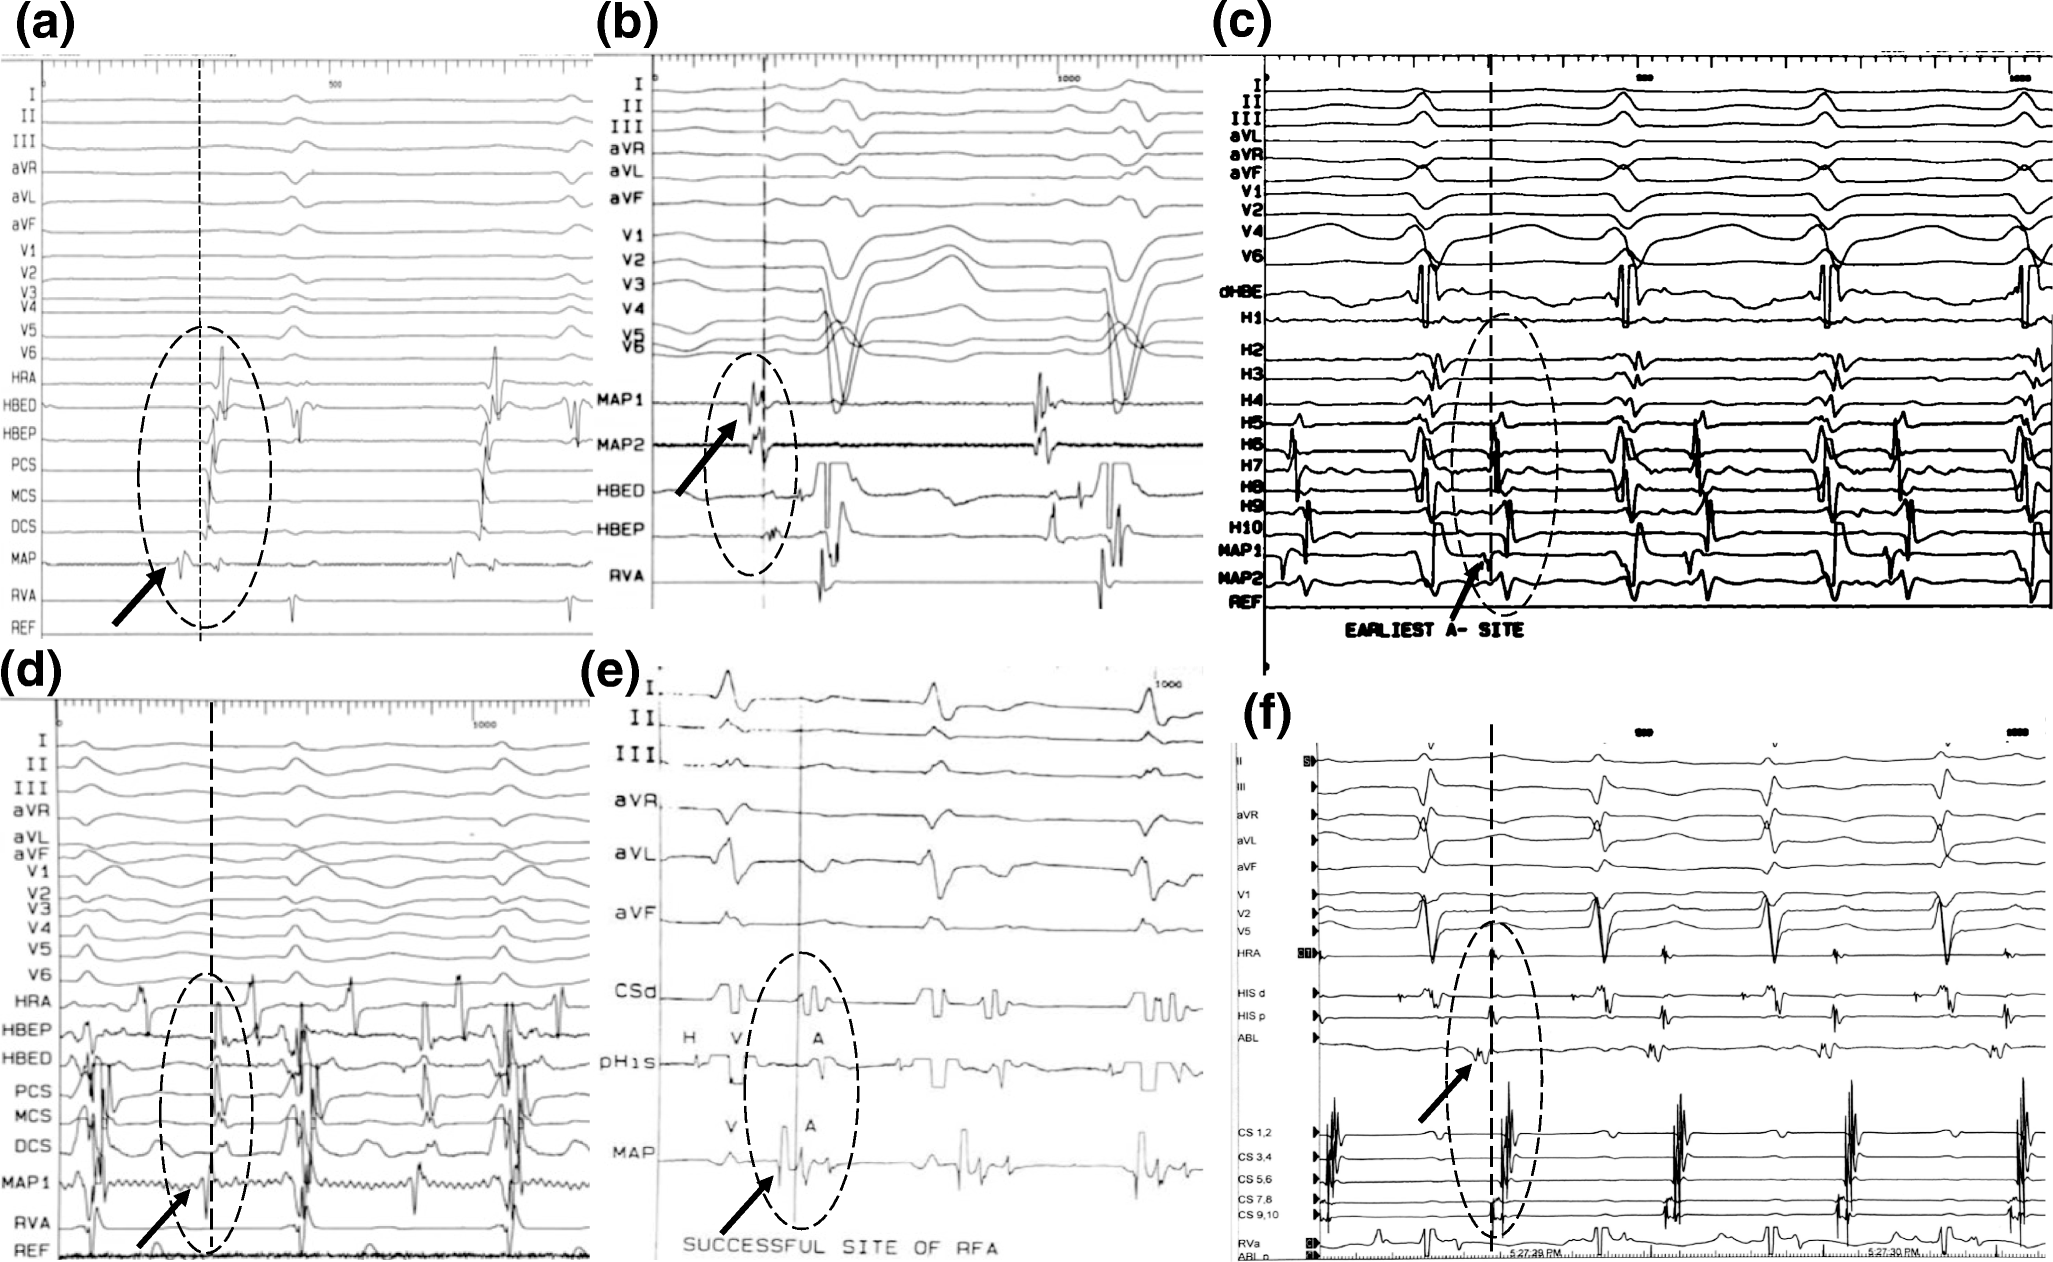 Focal atrial tachycardia ablation: Highly successful with